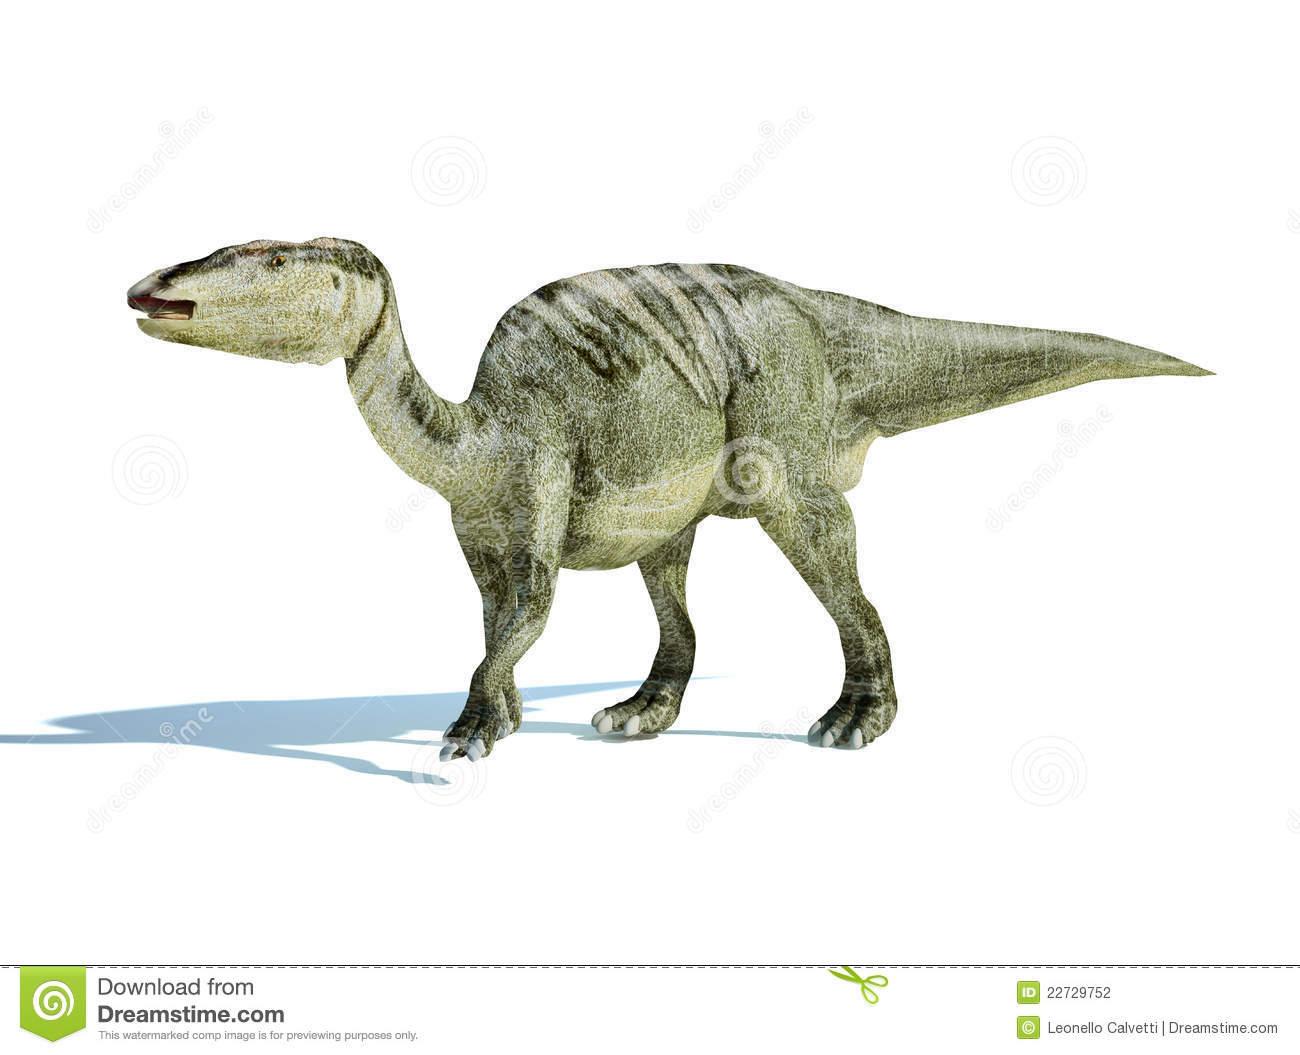 the characteristics of edmontosaurus a large extinct reptile Edmontosaurus was a large, four-legged, scaled, herbivorous dinosaur the edmontosaurus would eat plants and grasses, and chew up its meal in its uniquely shaped jaw, while trying not to become a meal itself.